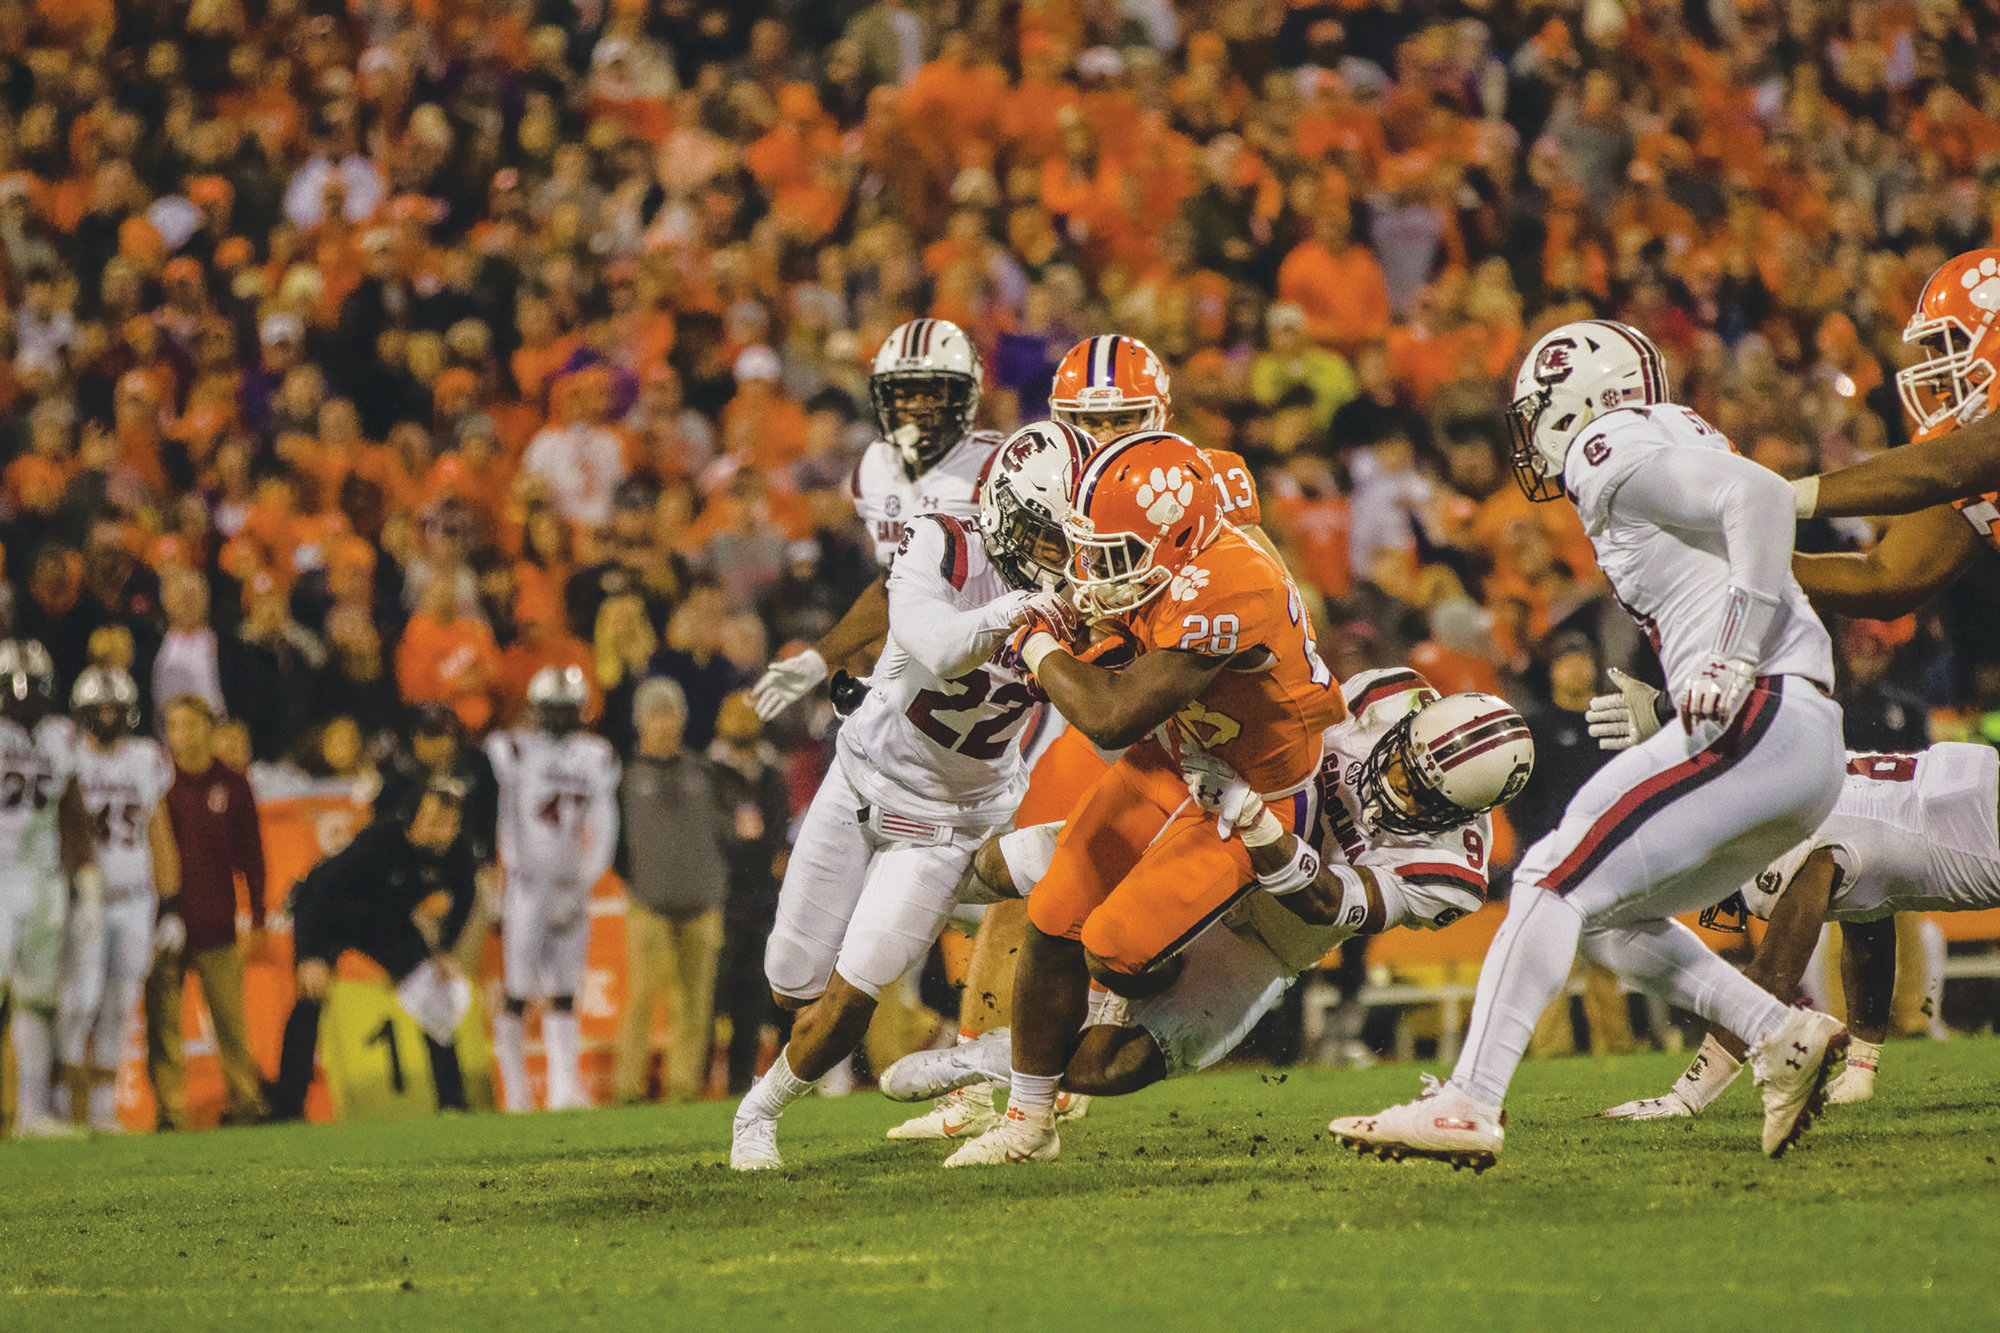 SUMTER ITEM FILE PHOTOFormer Clemson running back Tavien Feaster (20) is shown running the football against South Carolina in the Tigers' 56-35 victory last season. Feaster has announced he will be playing for USC this season as a graduate transfer.